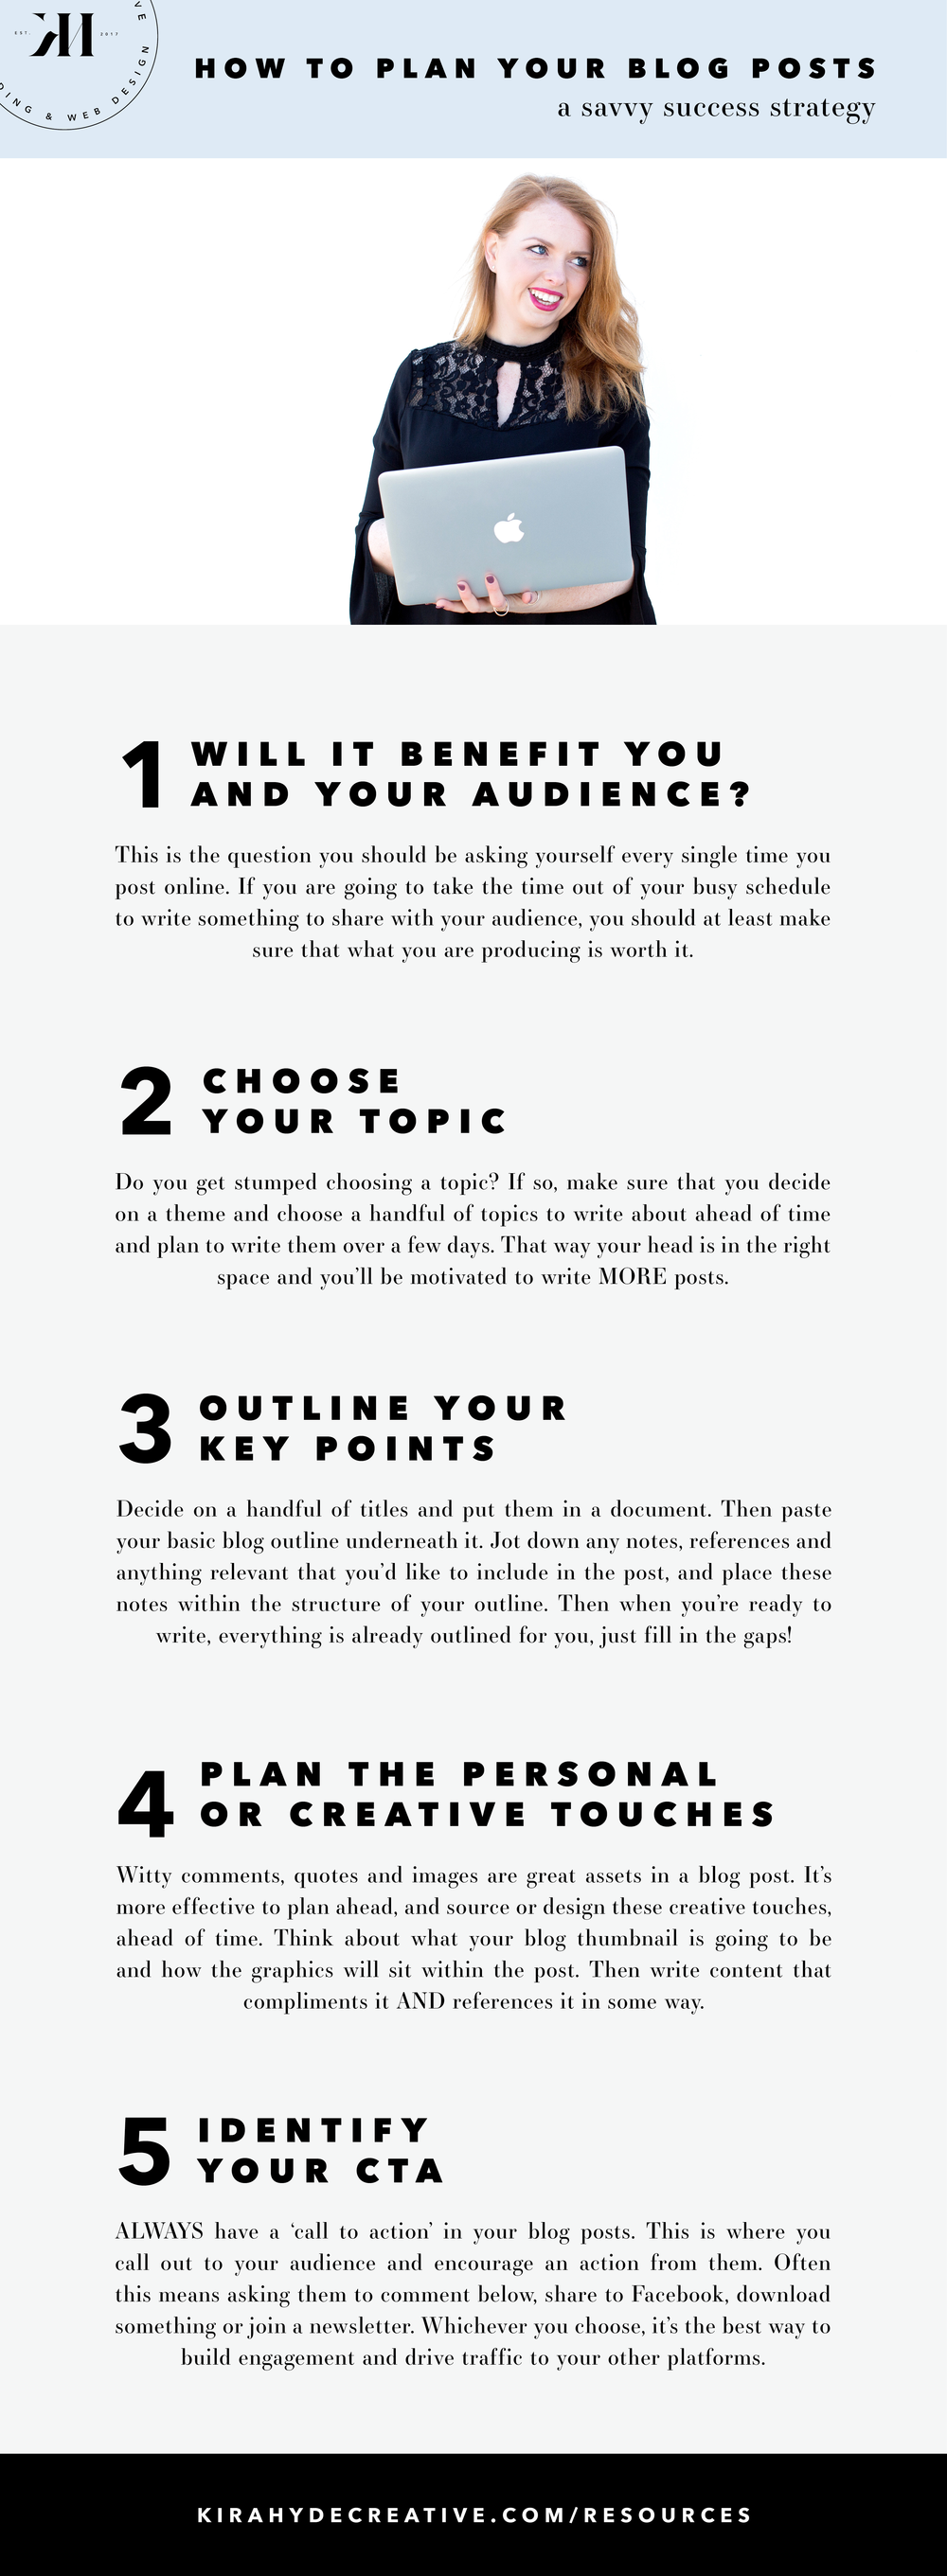 How to Plan Your Blog Posts